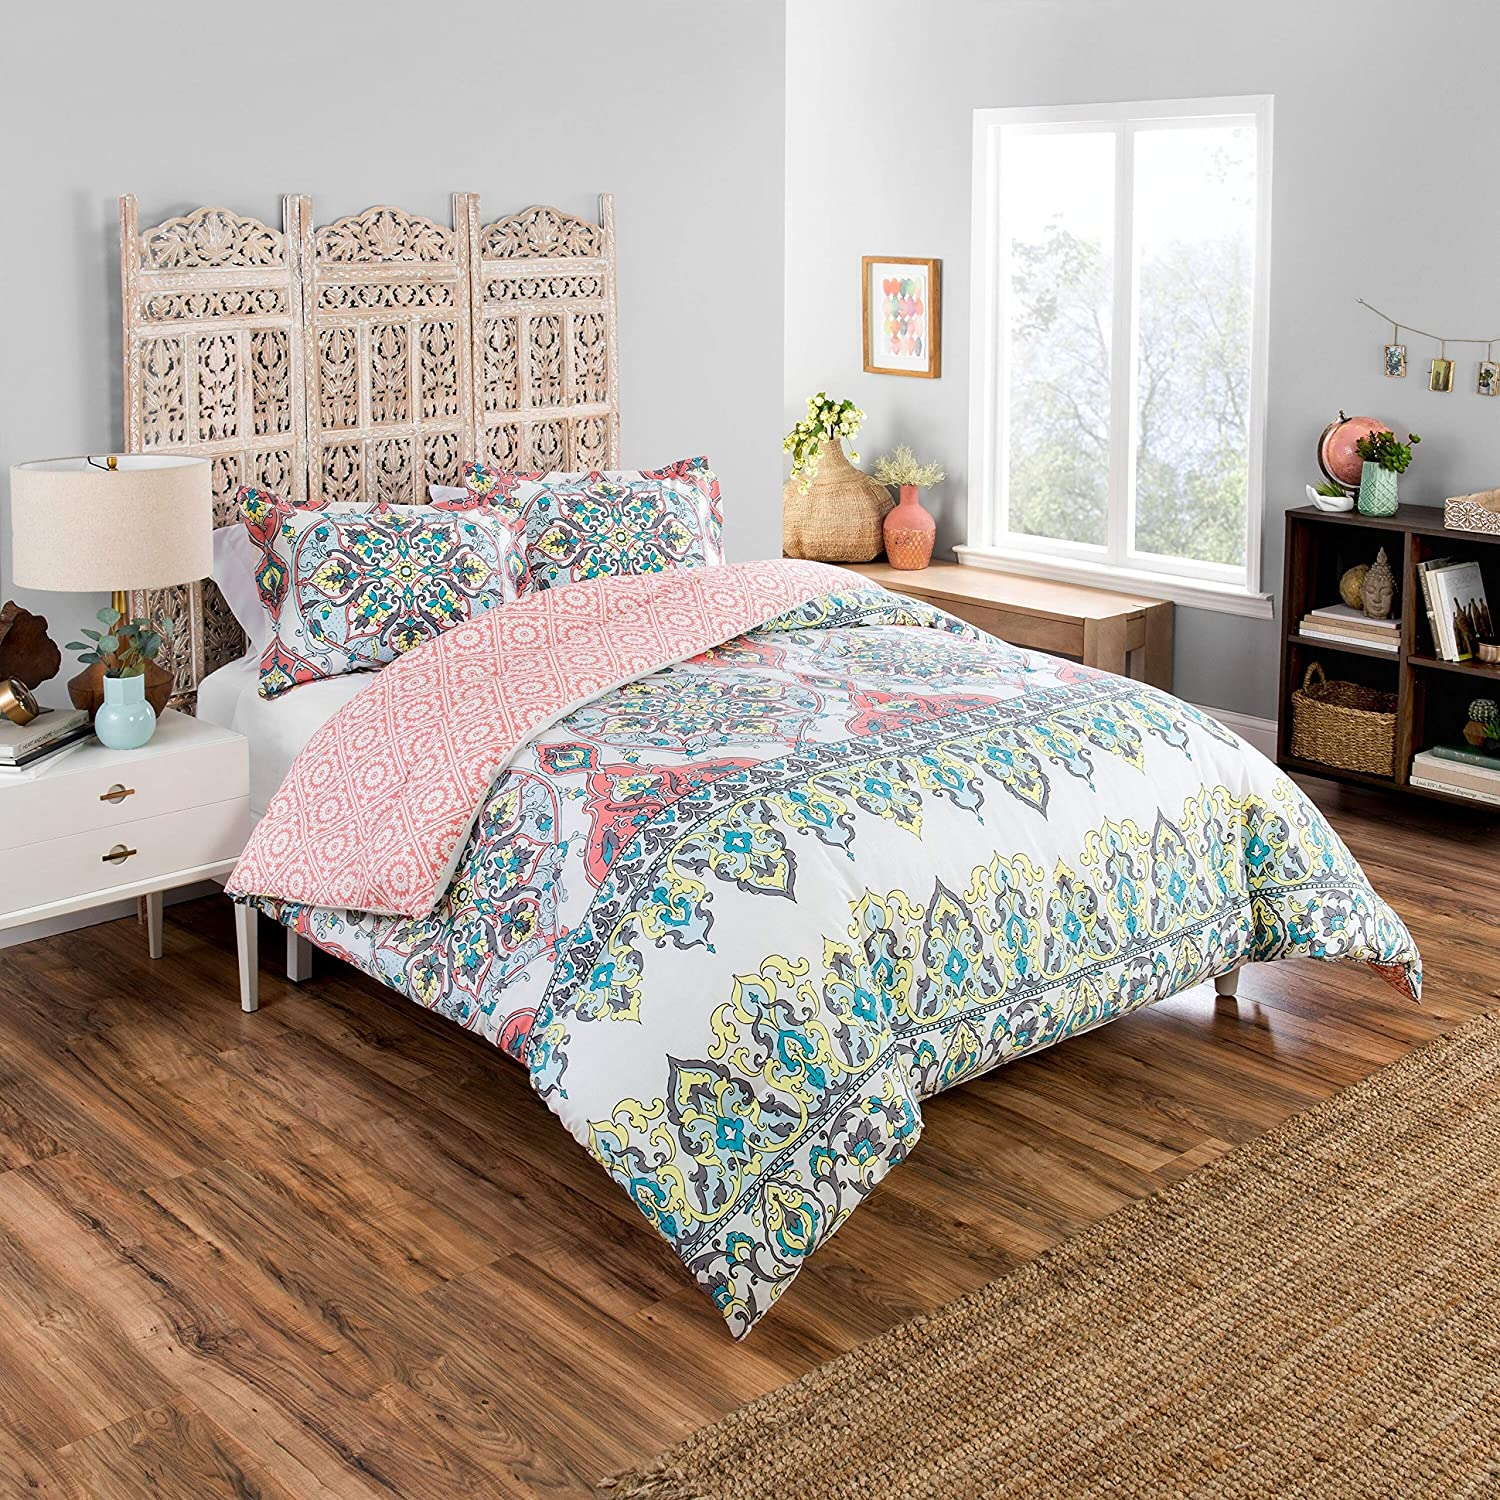 Boho Now free shipping Boutique Rozella Comforter Time sale with Blue 2 Shams King Pillow